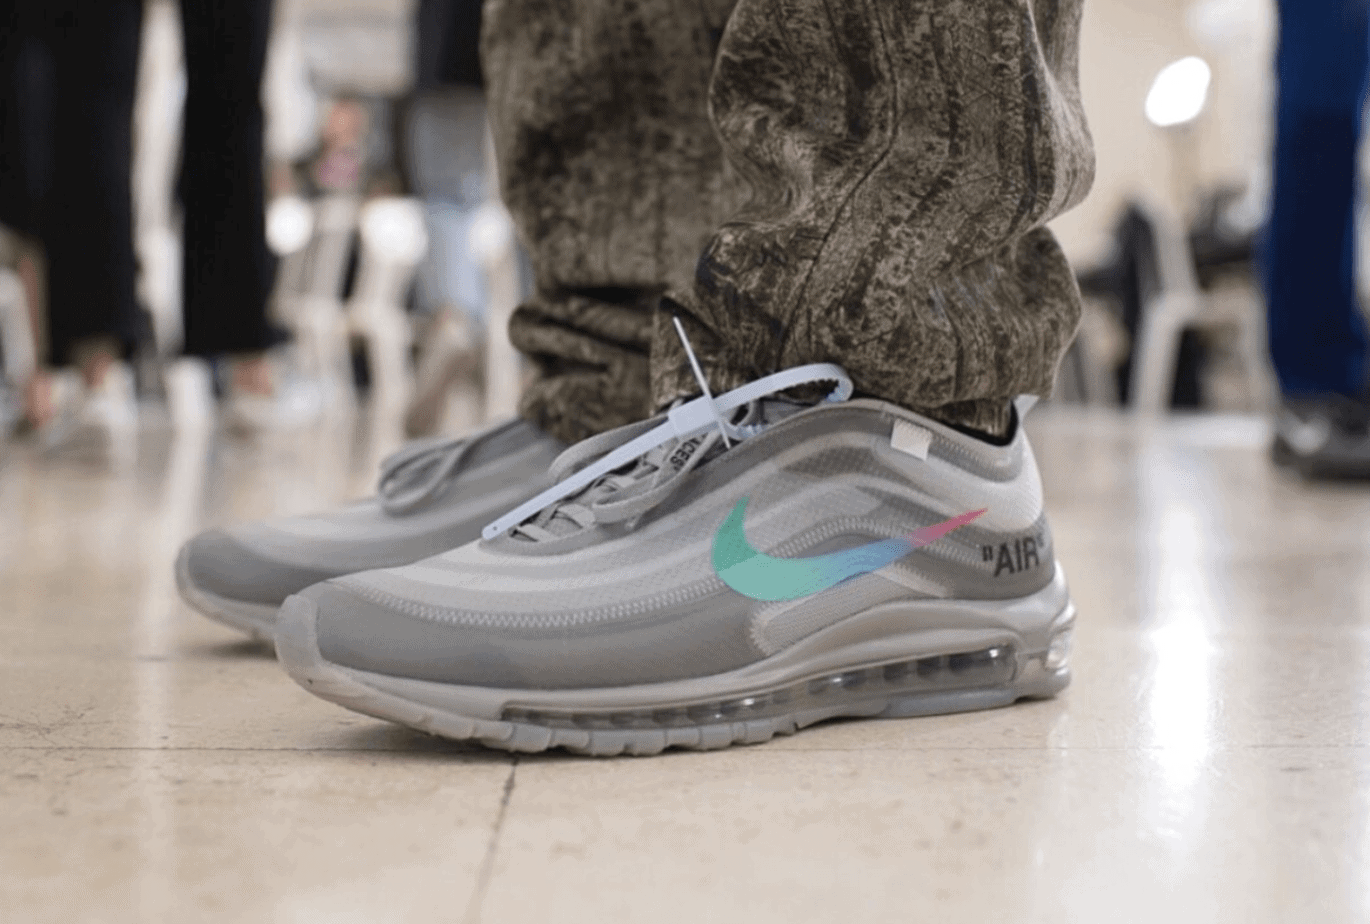 timeless design f132a af308 Virgil Abloh Unveils a Slew of Upcoming Nike Colorways During is Off-White  Fashion Show